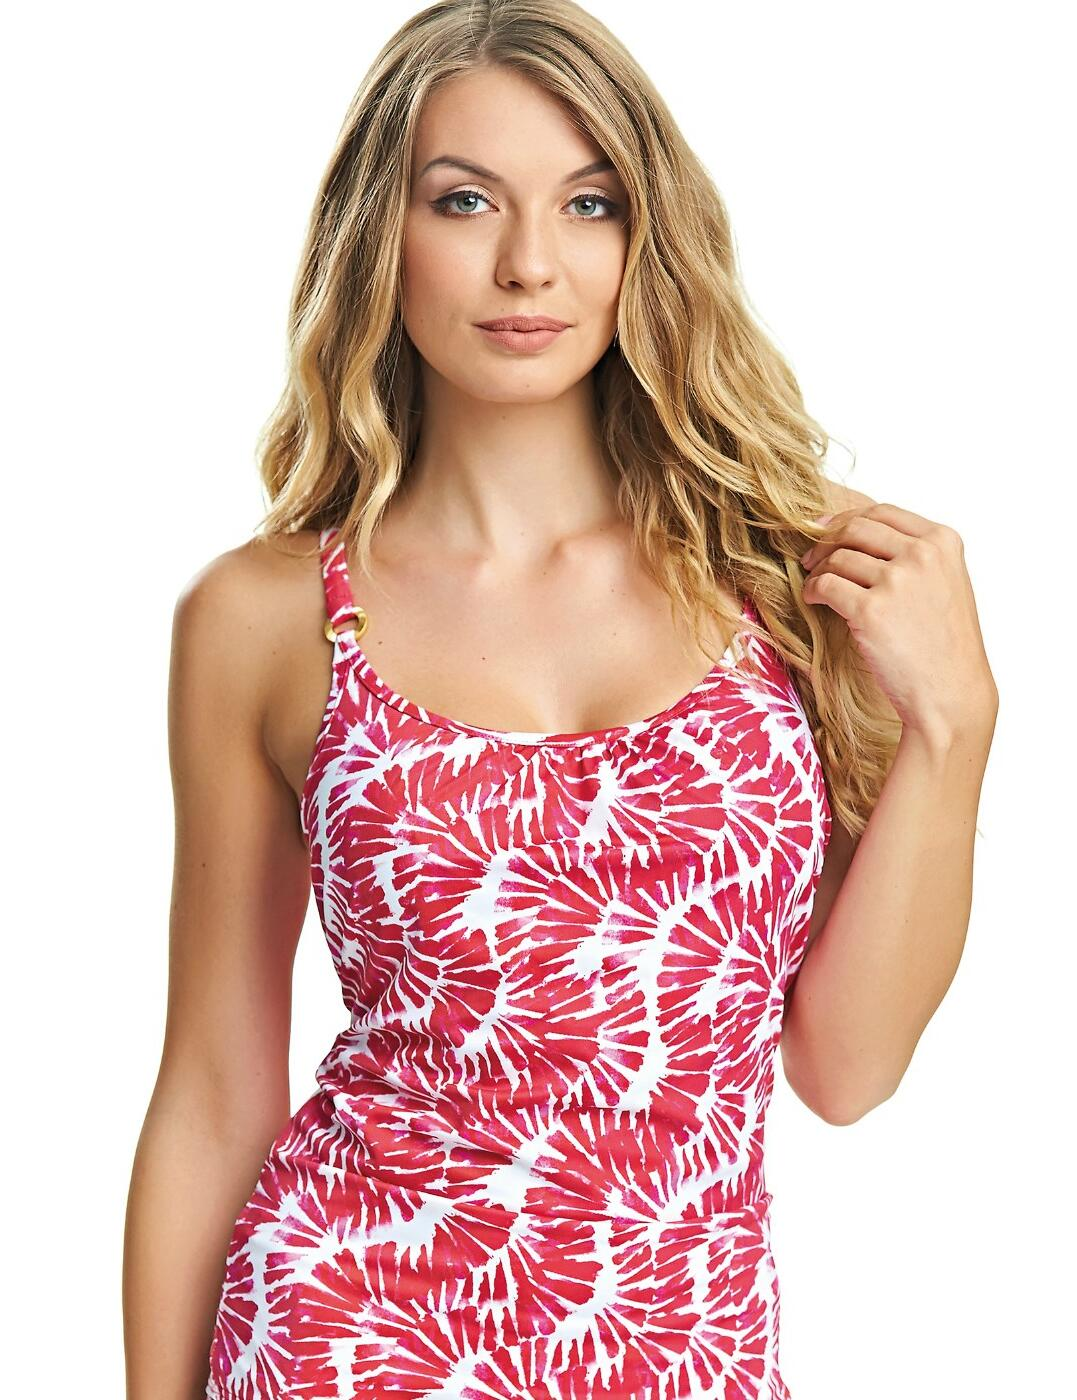 6314 Fantasie Lanai Scoop Neck Tankini Top - 6314 Rose Red